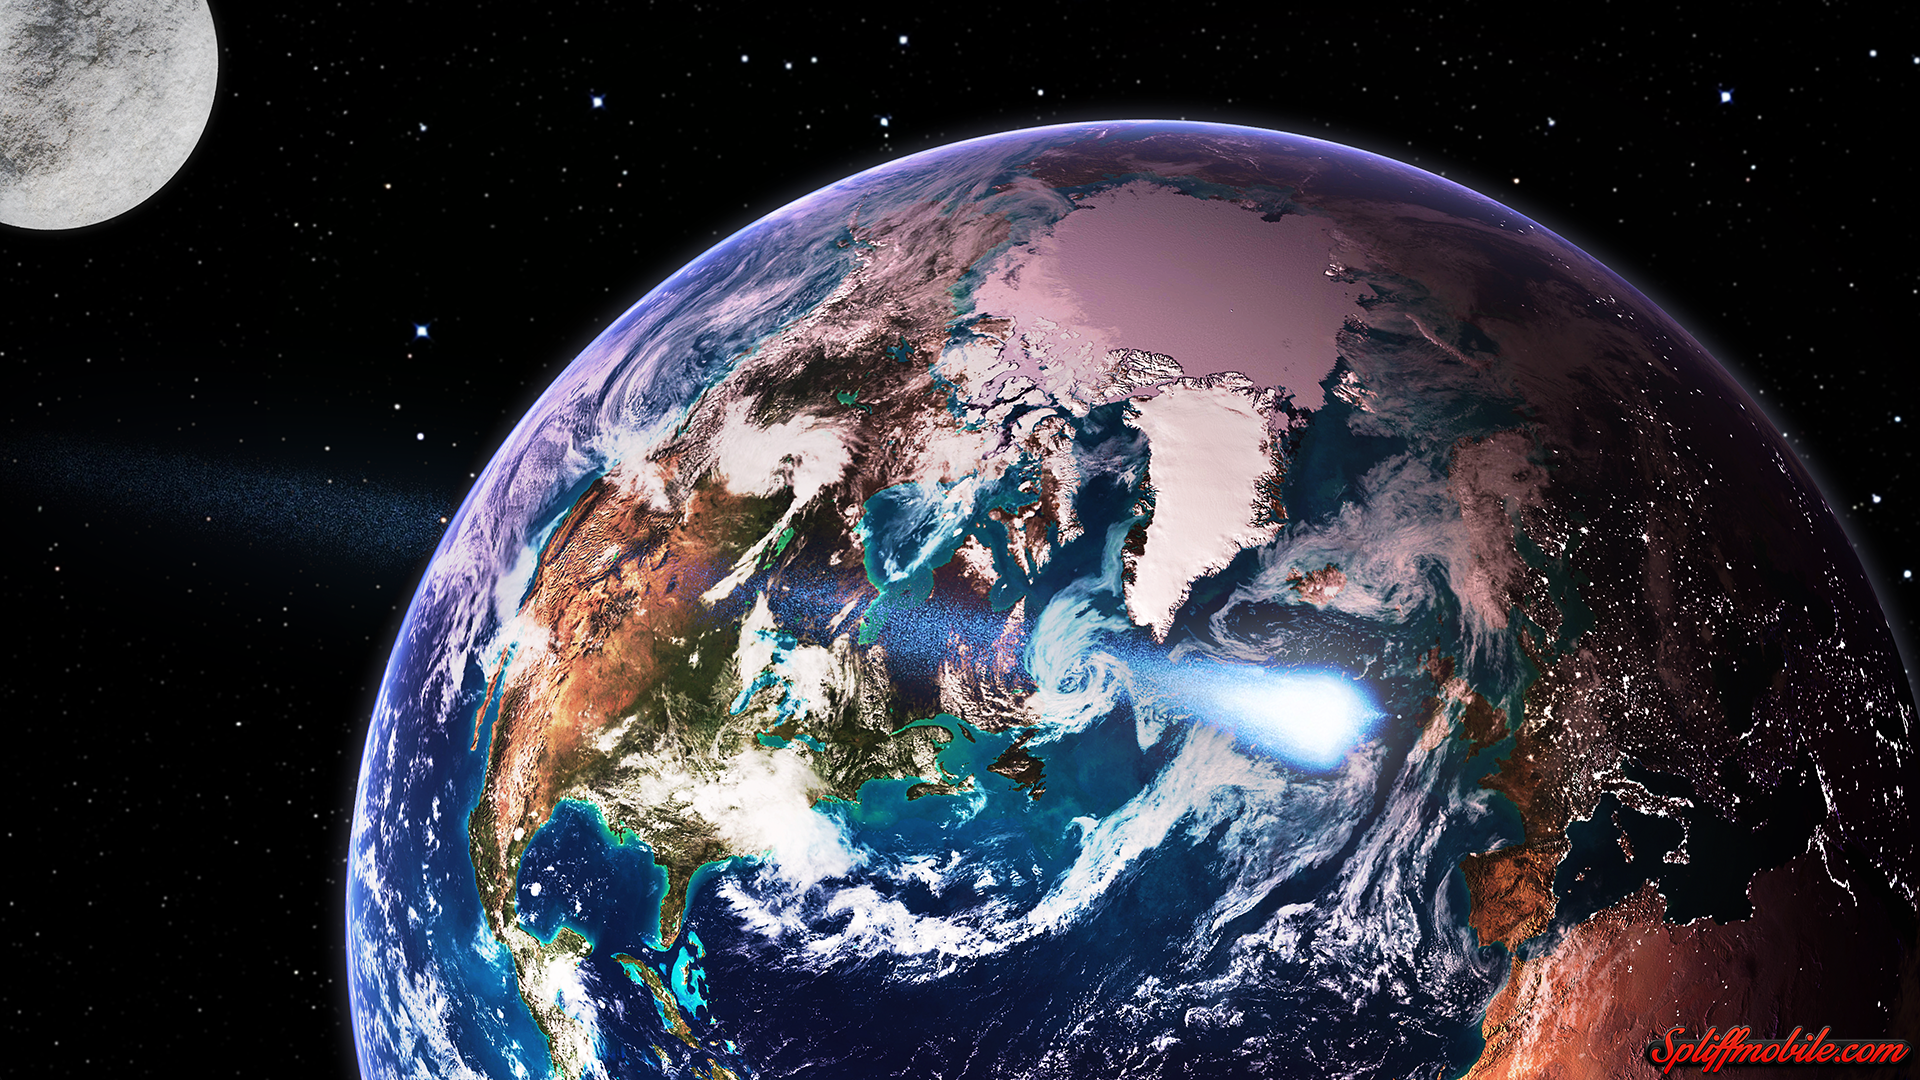 Hd Earth Wallpaper Png 1920 1080 4k Wallpapers For Pc Wallpaper Space Wallpaper Pc